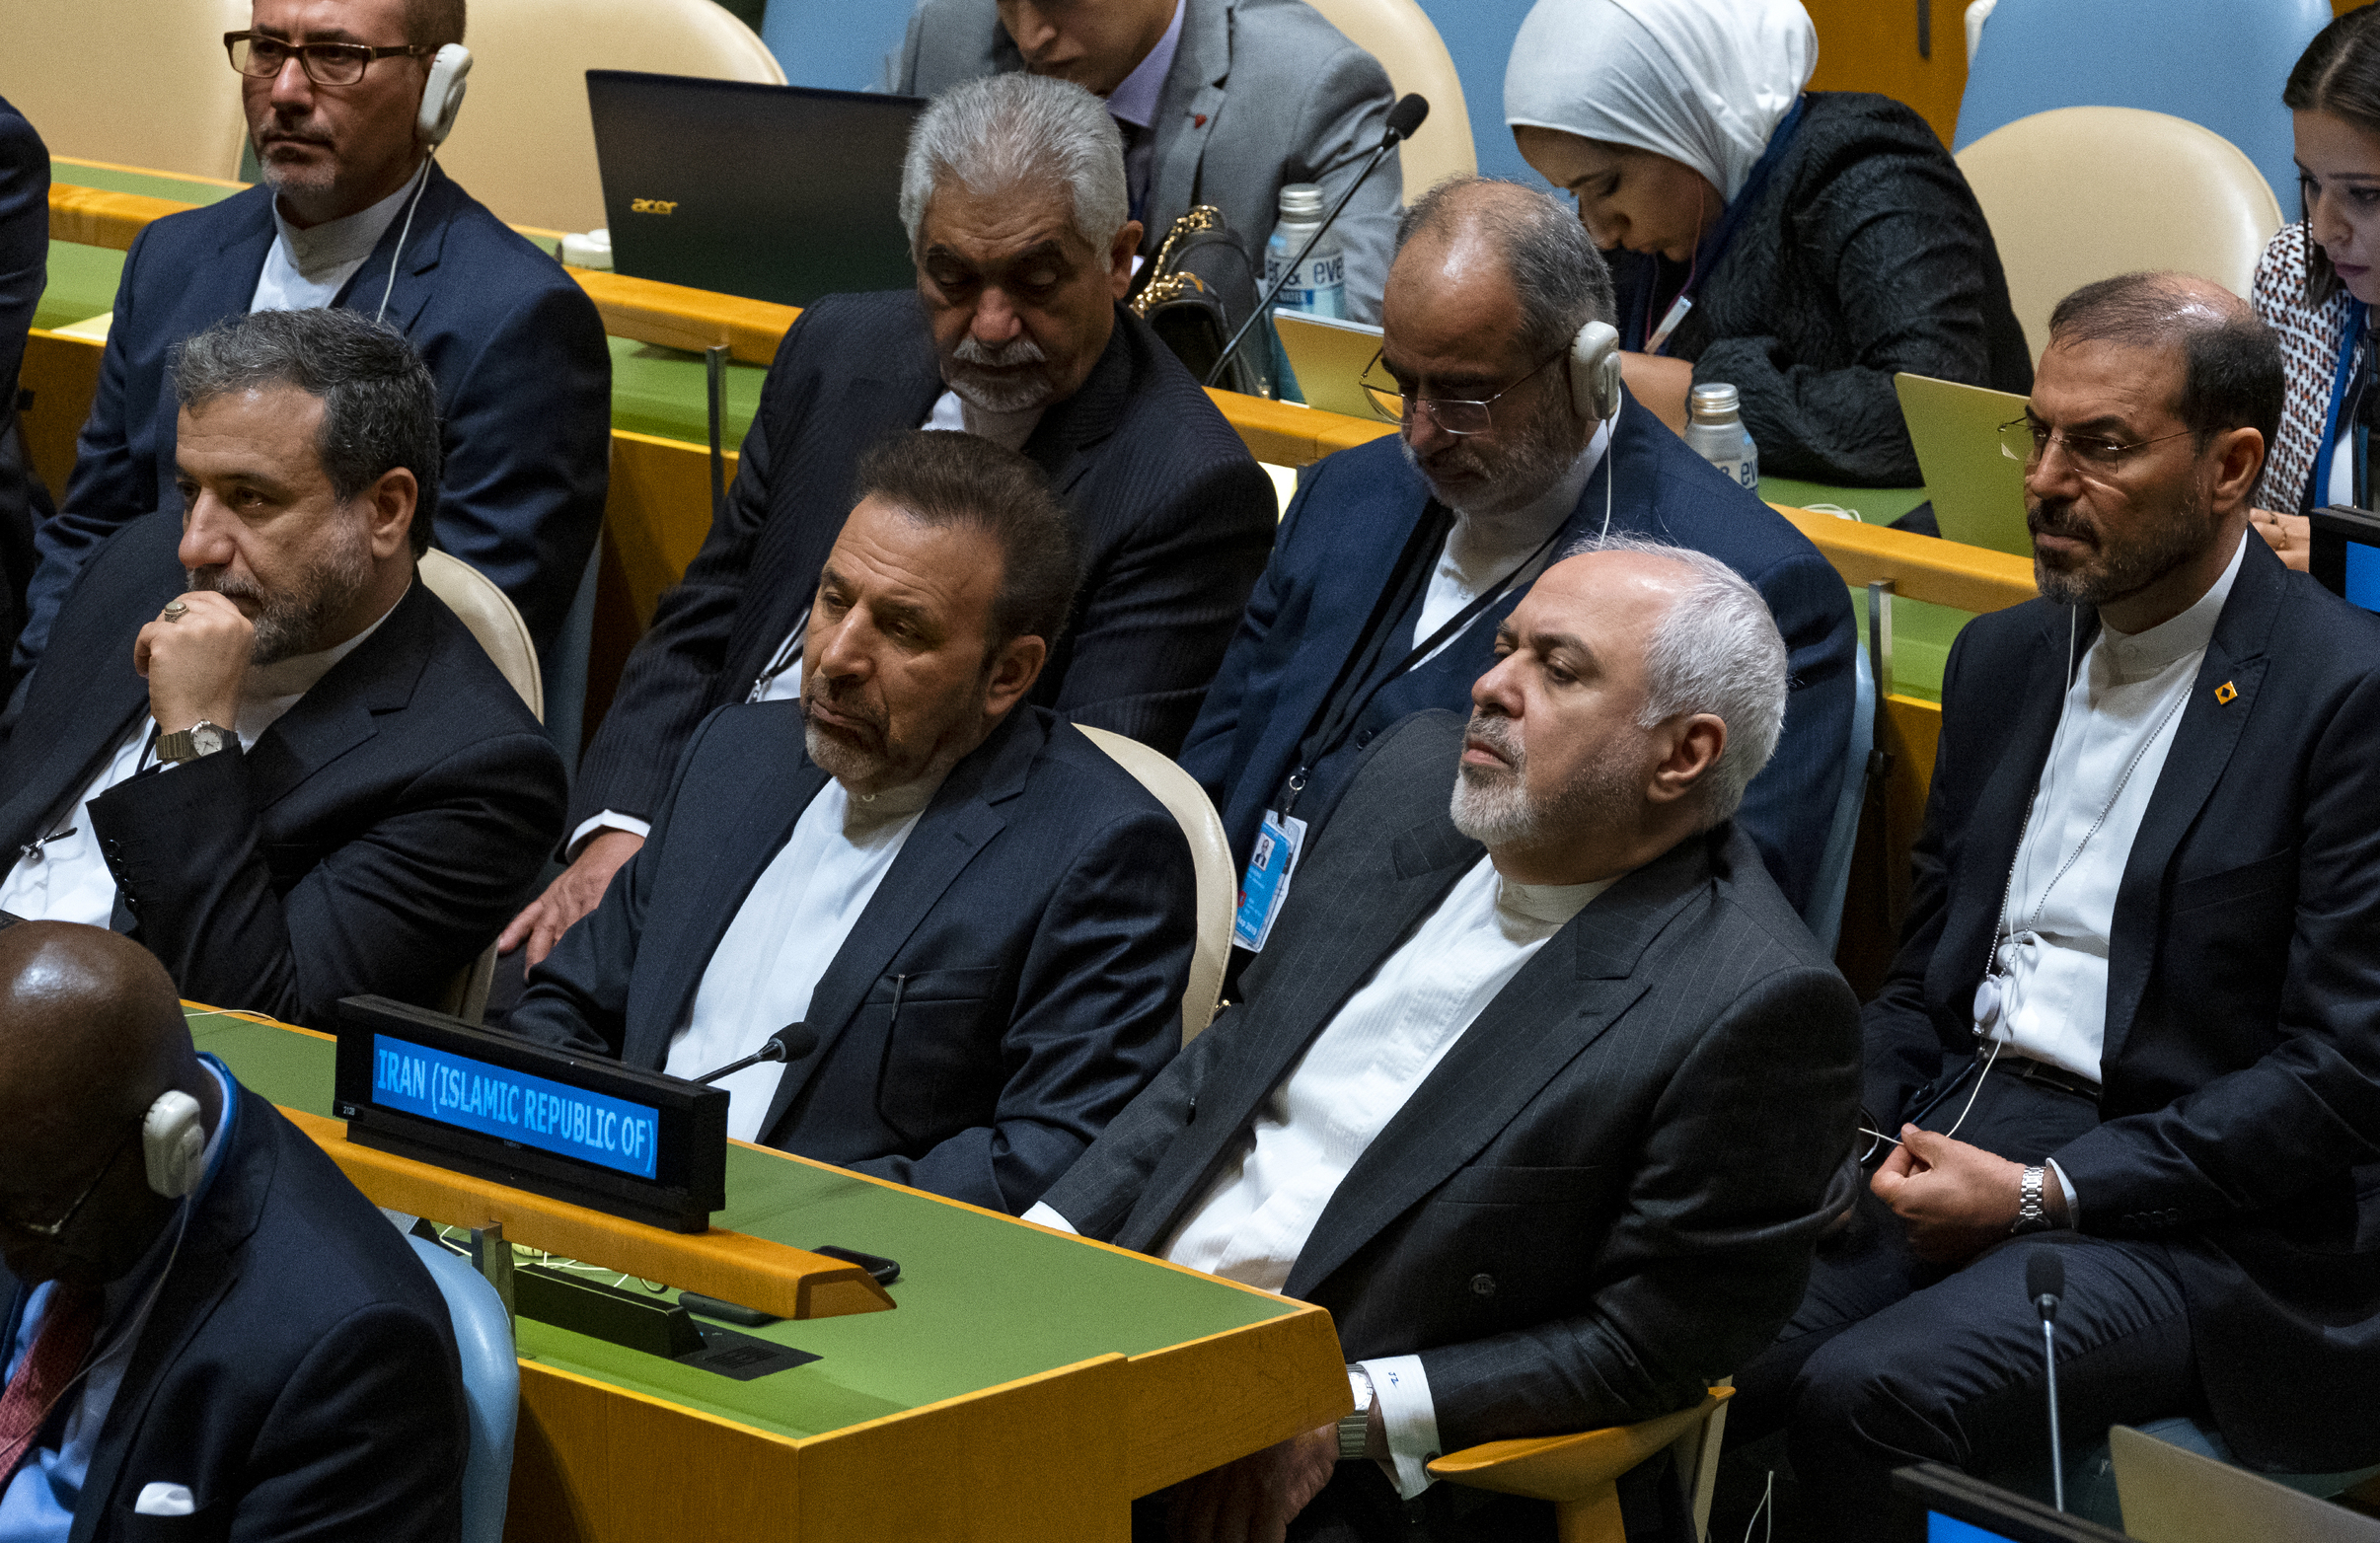 US: Zarif can visit sick colleague after Iran frees American